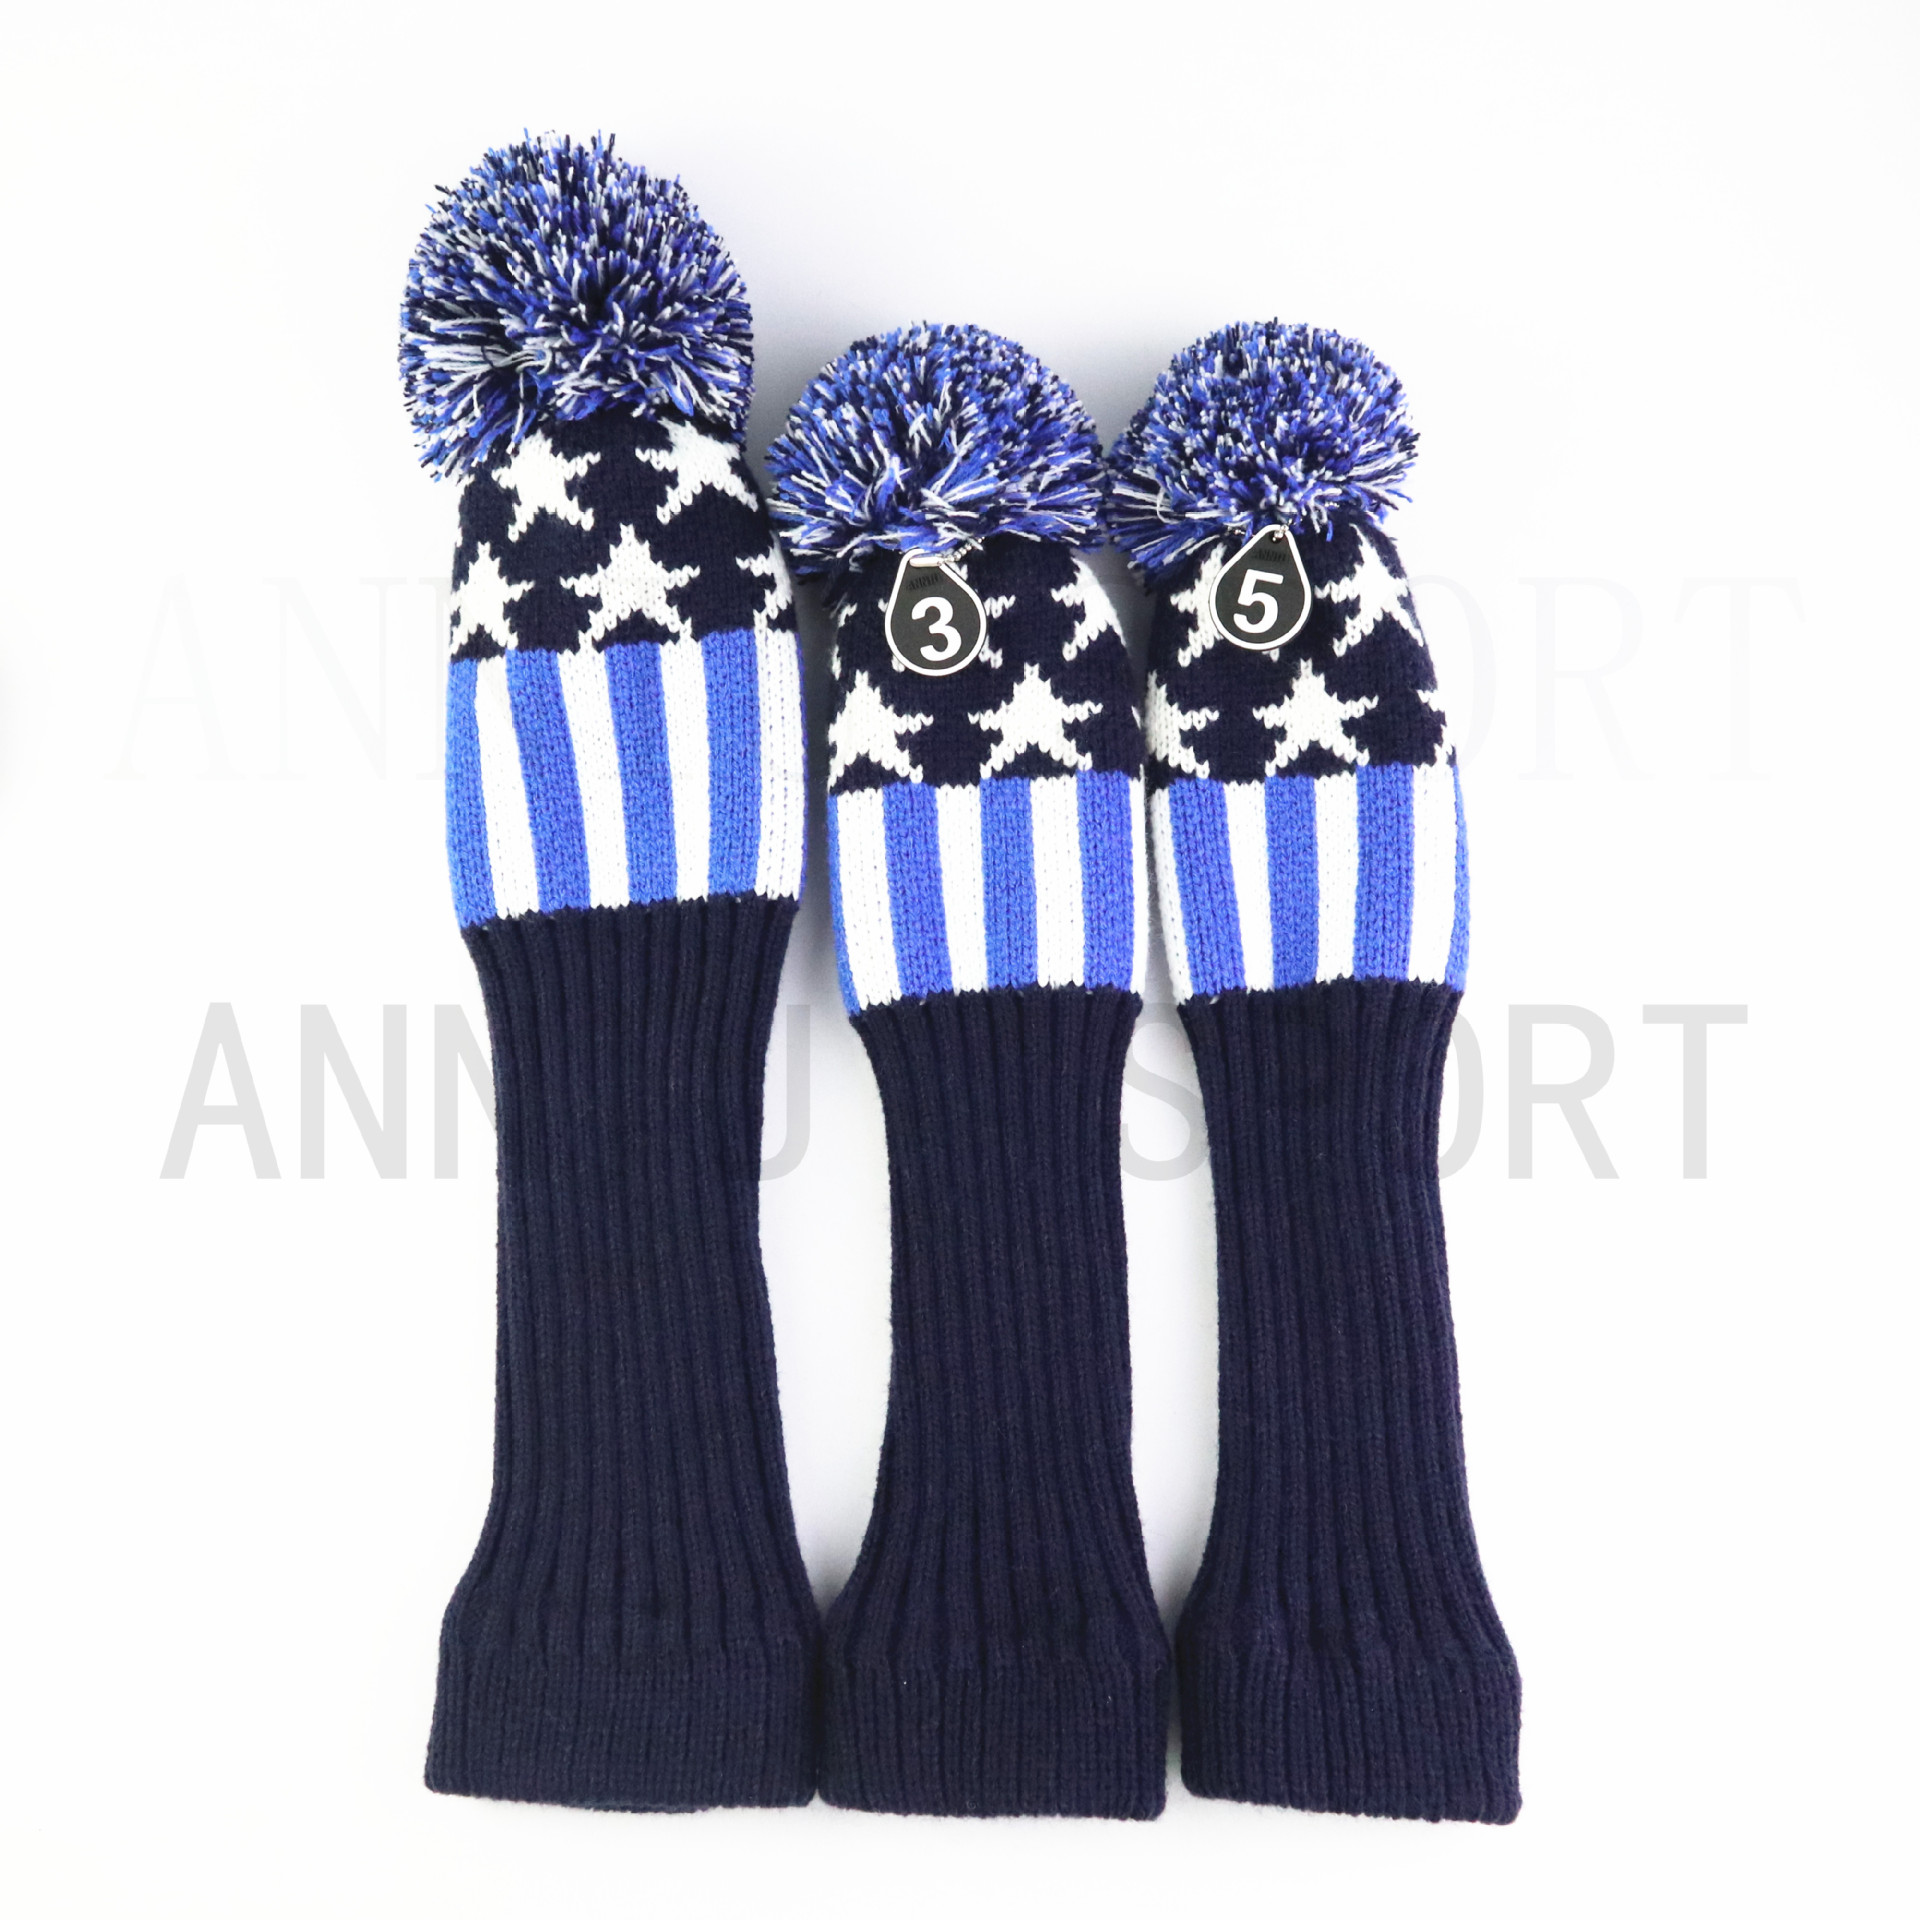 Manufacturers Direct Selling Cross Border Electricity Supplier Golf Wooden Pole Suit Sleeve Qiu Gan Tao Yarn Knitted A Set Of 1/